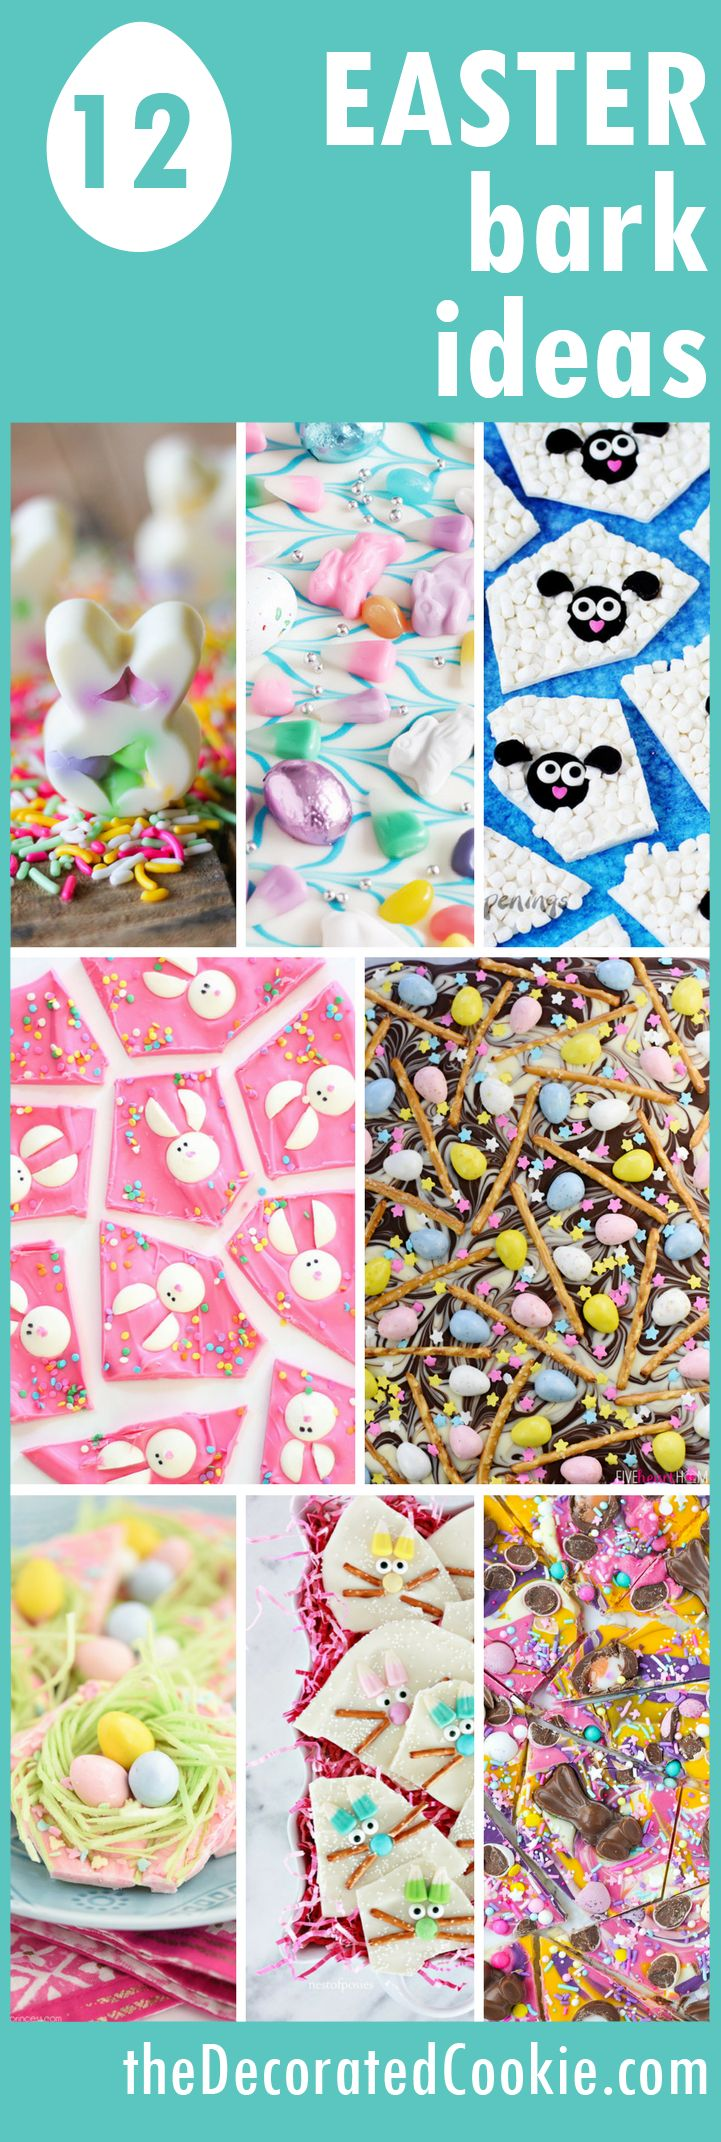 12 Easter chocolate bark ideas